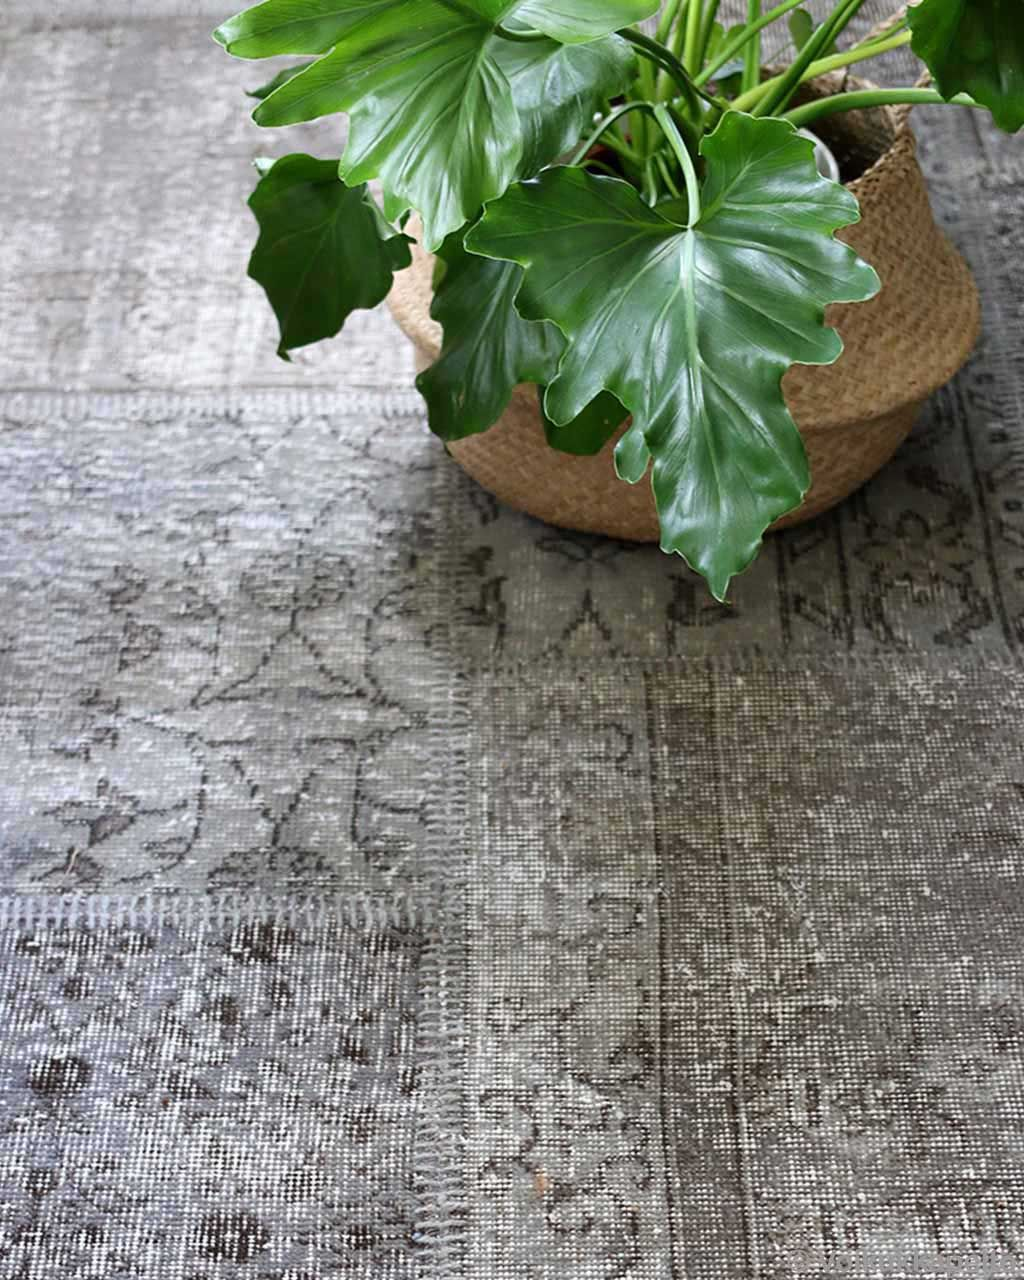 hand knotted green plant oriental light gray rugs online